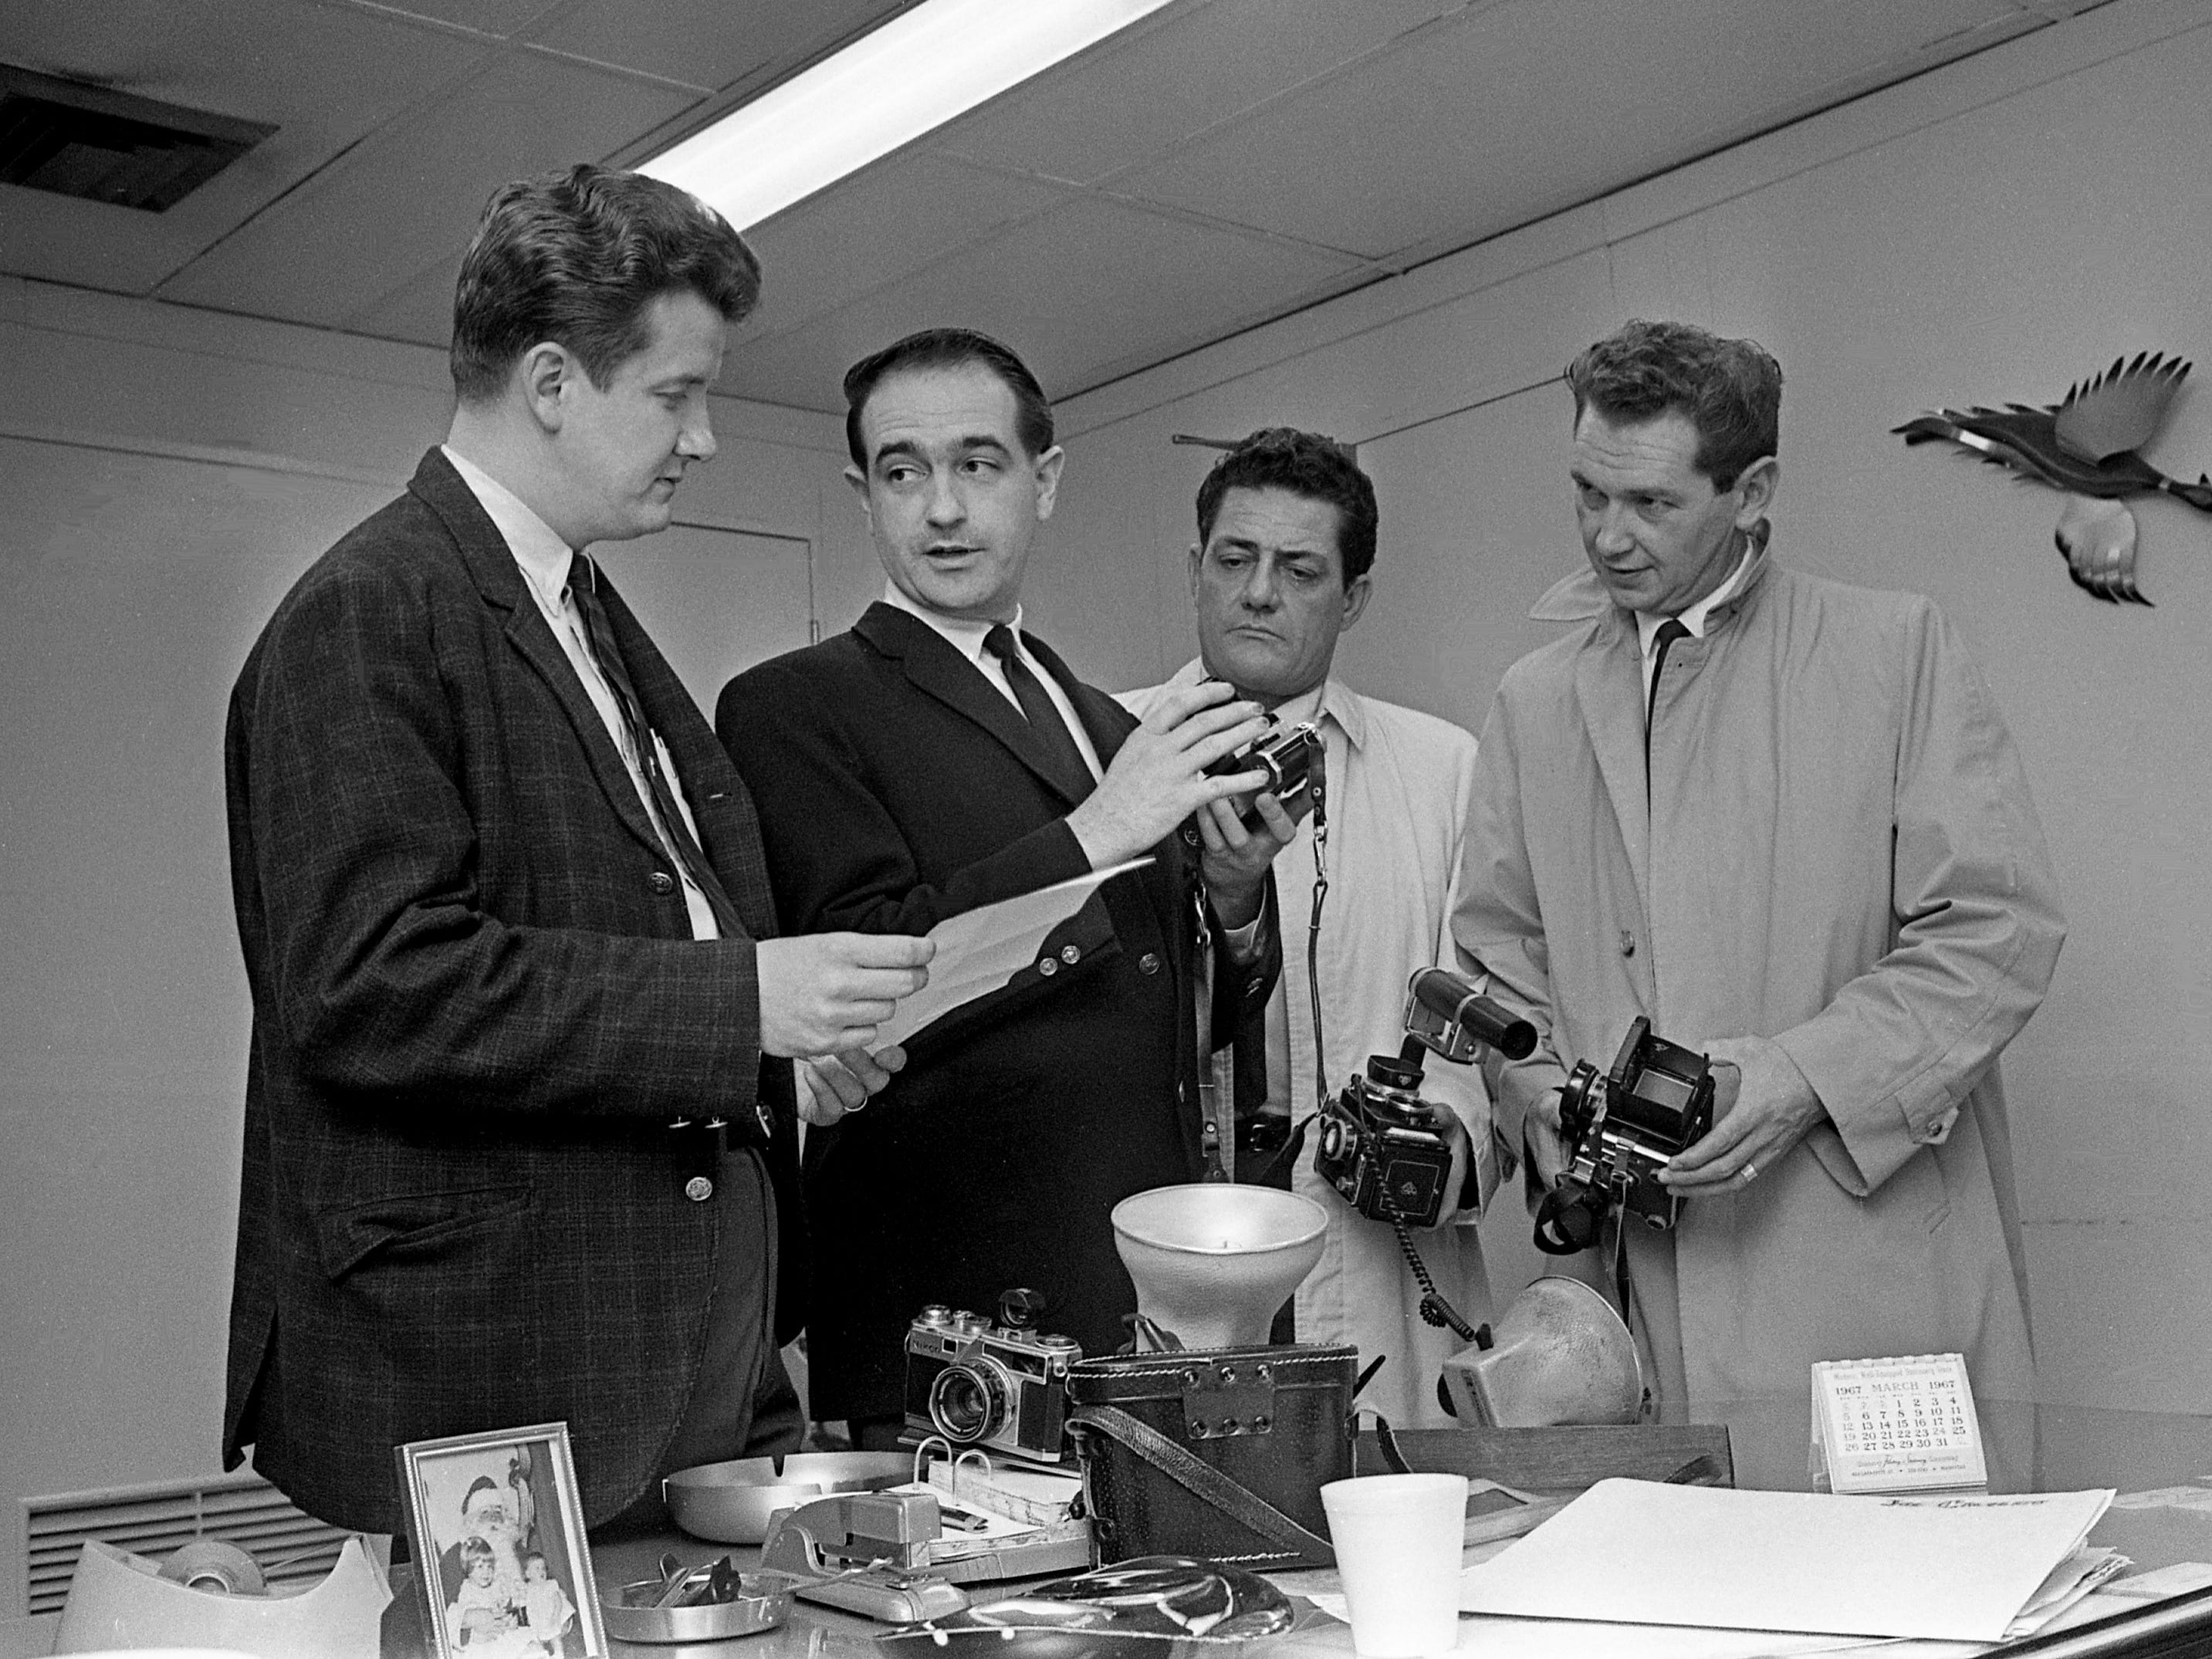 Detective Sgt. Doug Dennis, left, helps Tennessean staff photographer Frank Empson, second from left, identify cameras March 17, 1967, that were stolen Feb. 23. Detectives Archie Summers, right, and Guy Conquest aided in the recovery of the photographic equipment.